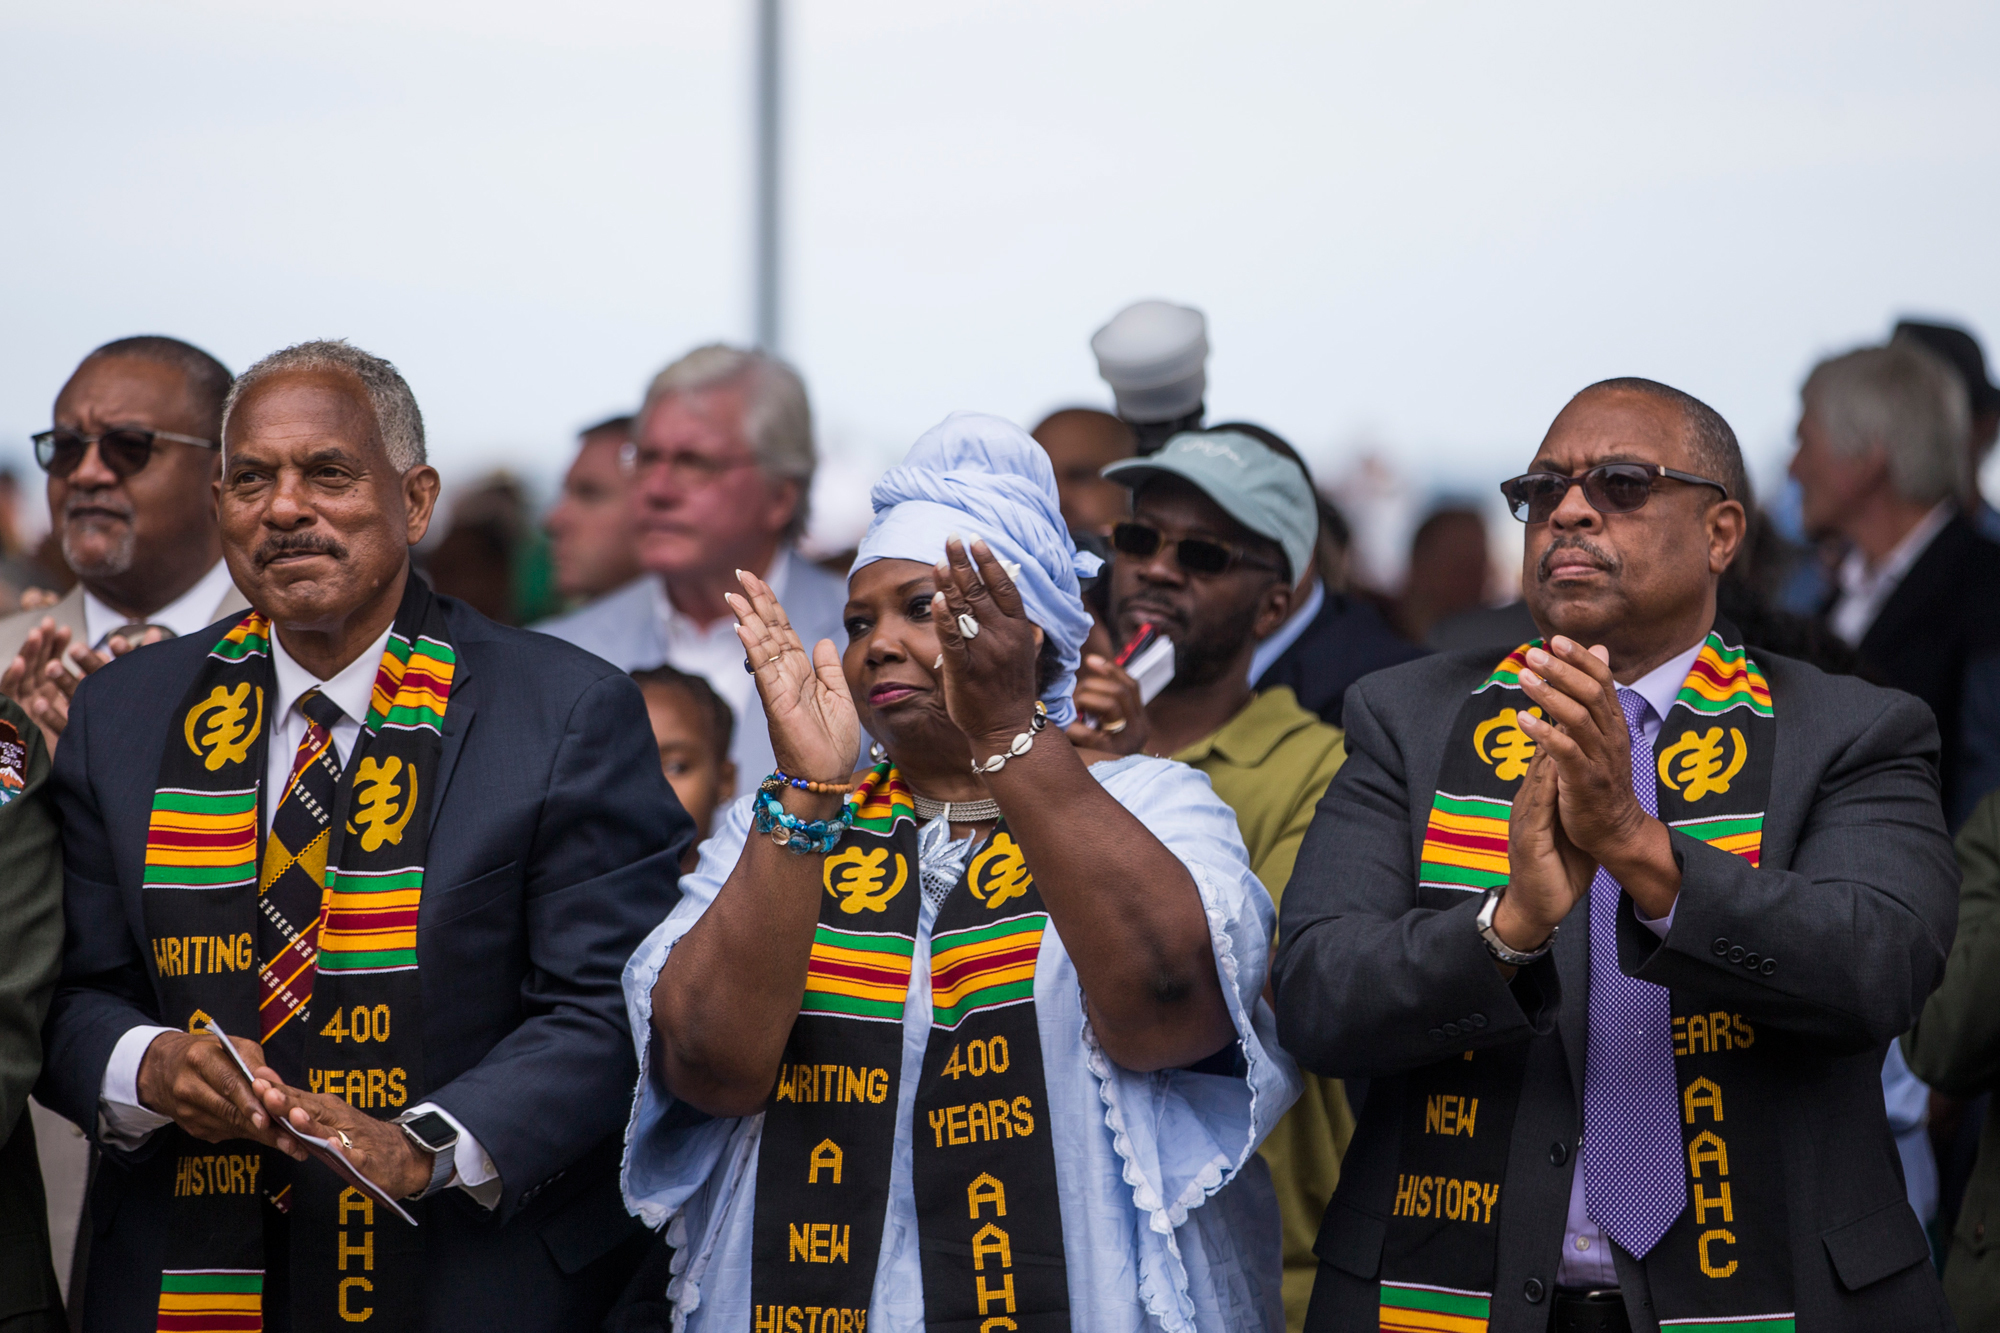 Members of the audience applaud during a ceremony in Hampton, Va., on Aug. 24, 2019, commemorating the 400th anniversary of the arrival of the first African slaves to English North America in 1619. (Zach Gibson/Getty Images)